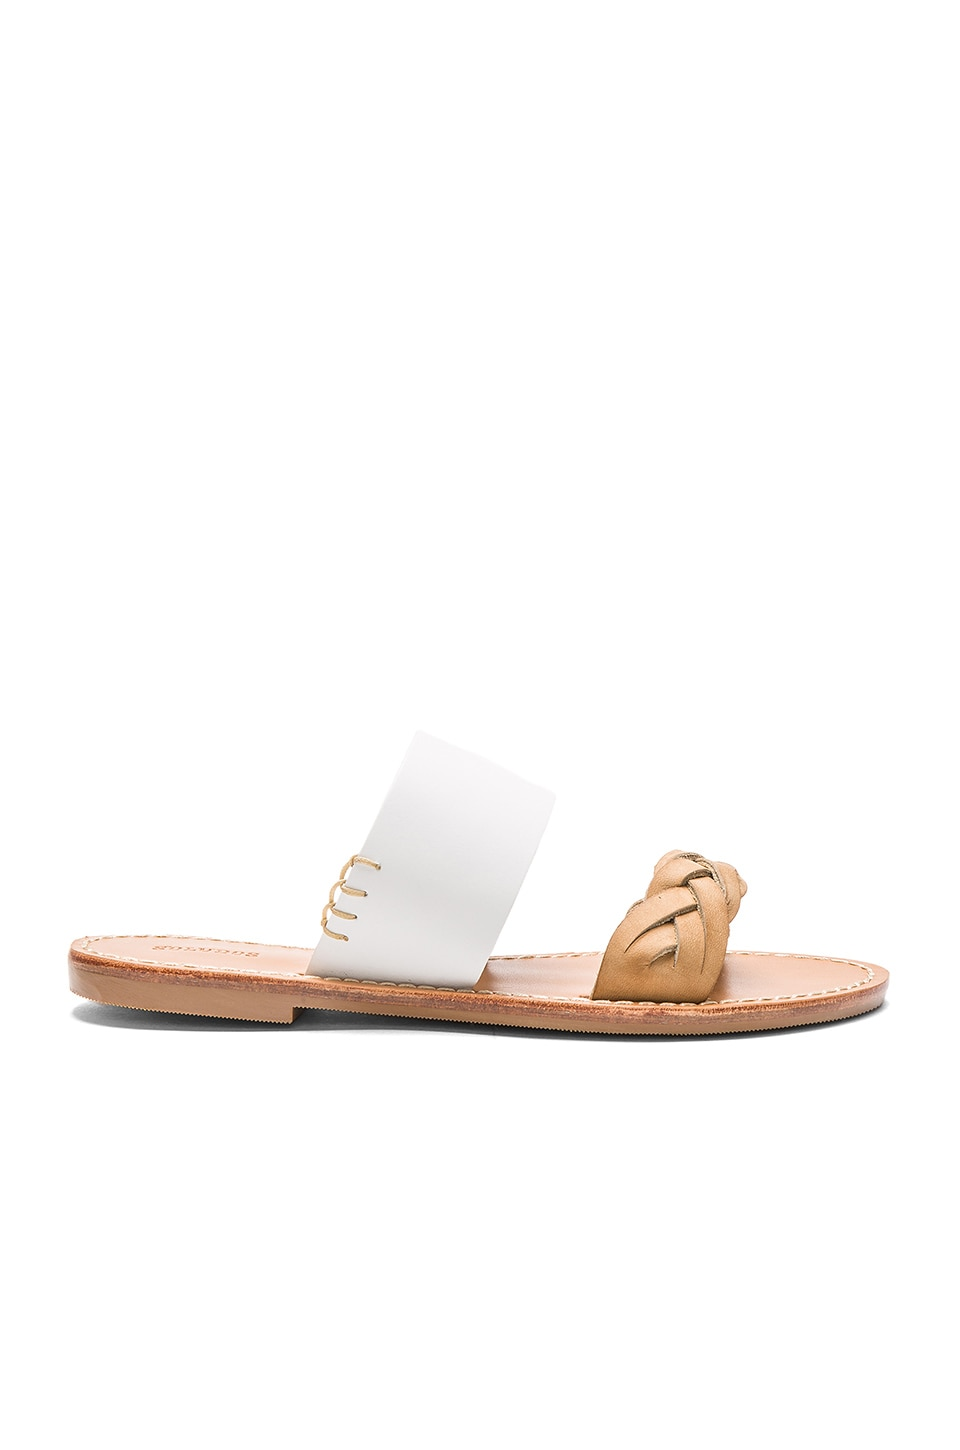 Soludos Braided Slide Sandal in White